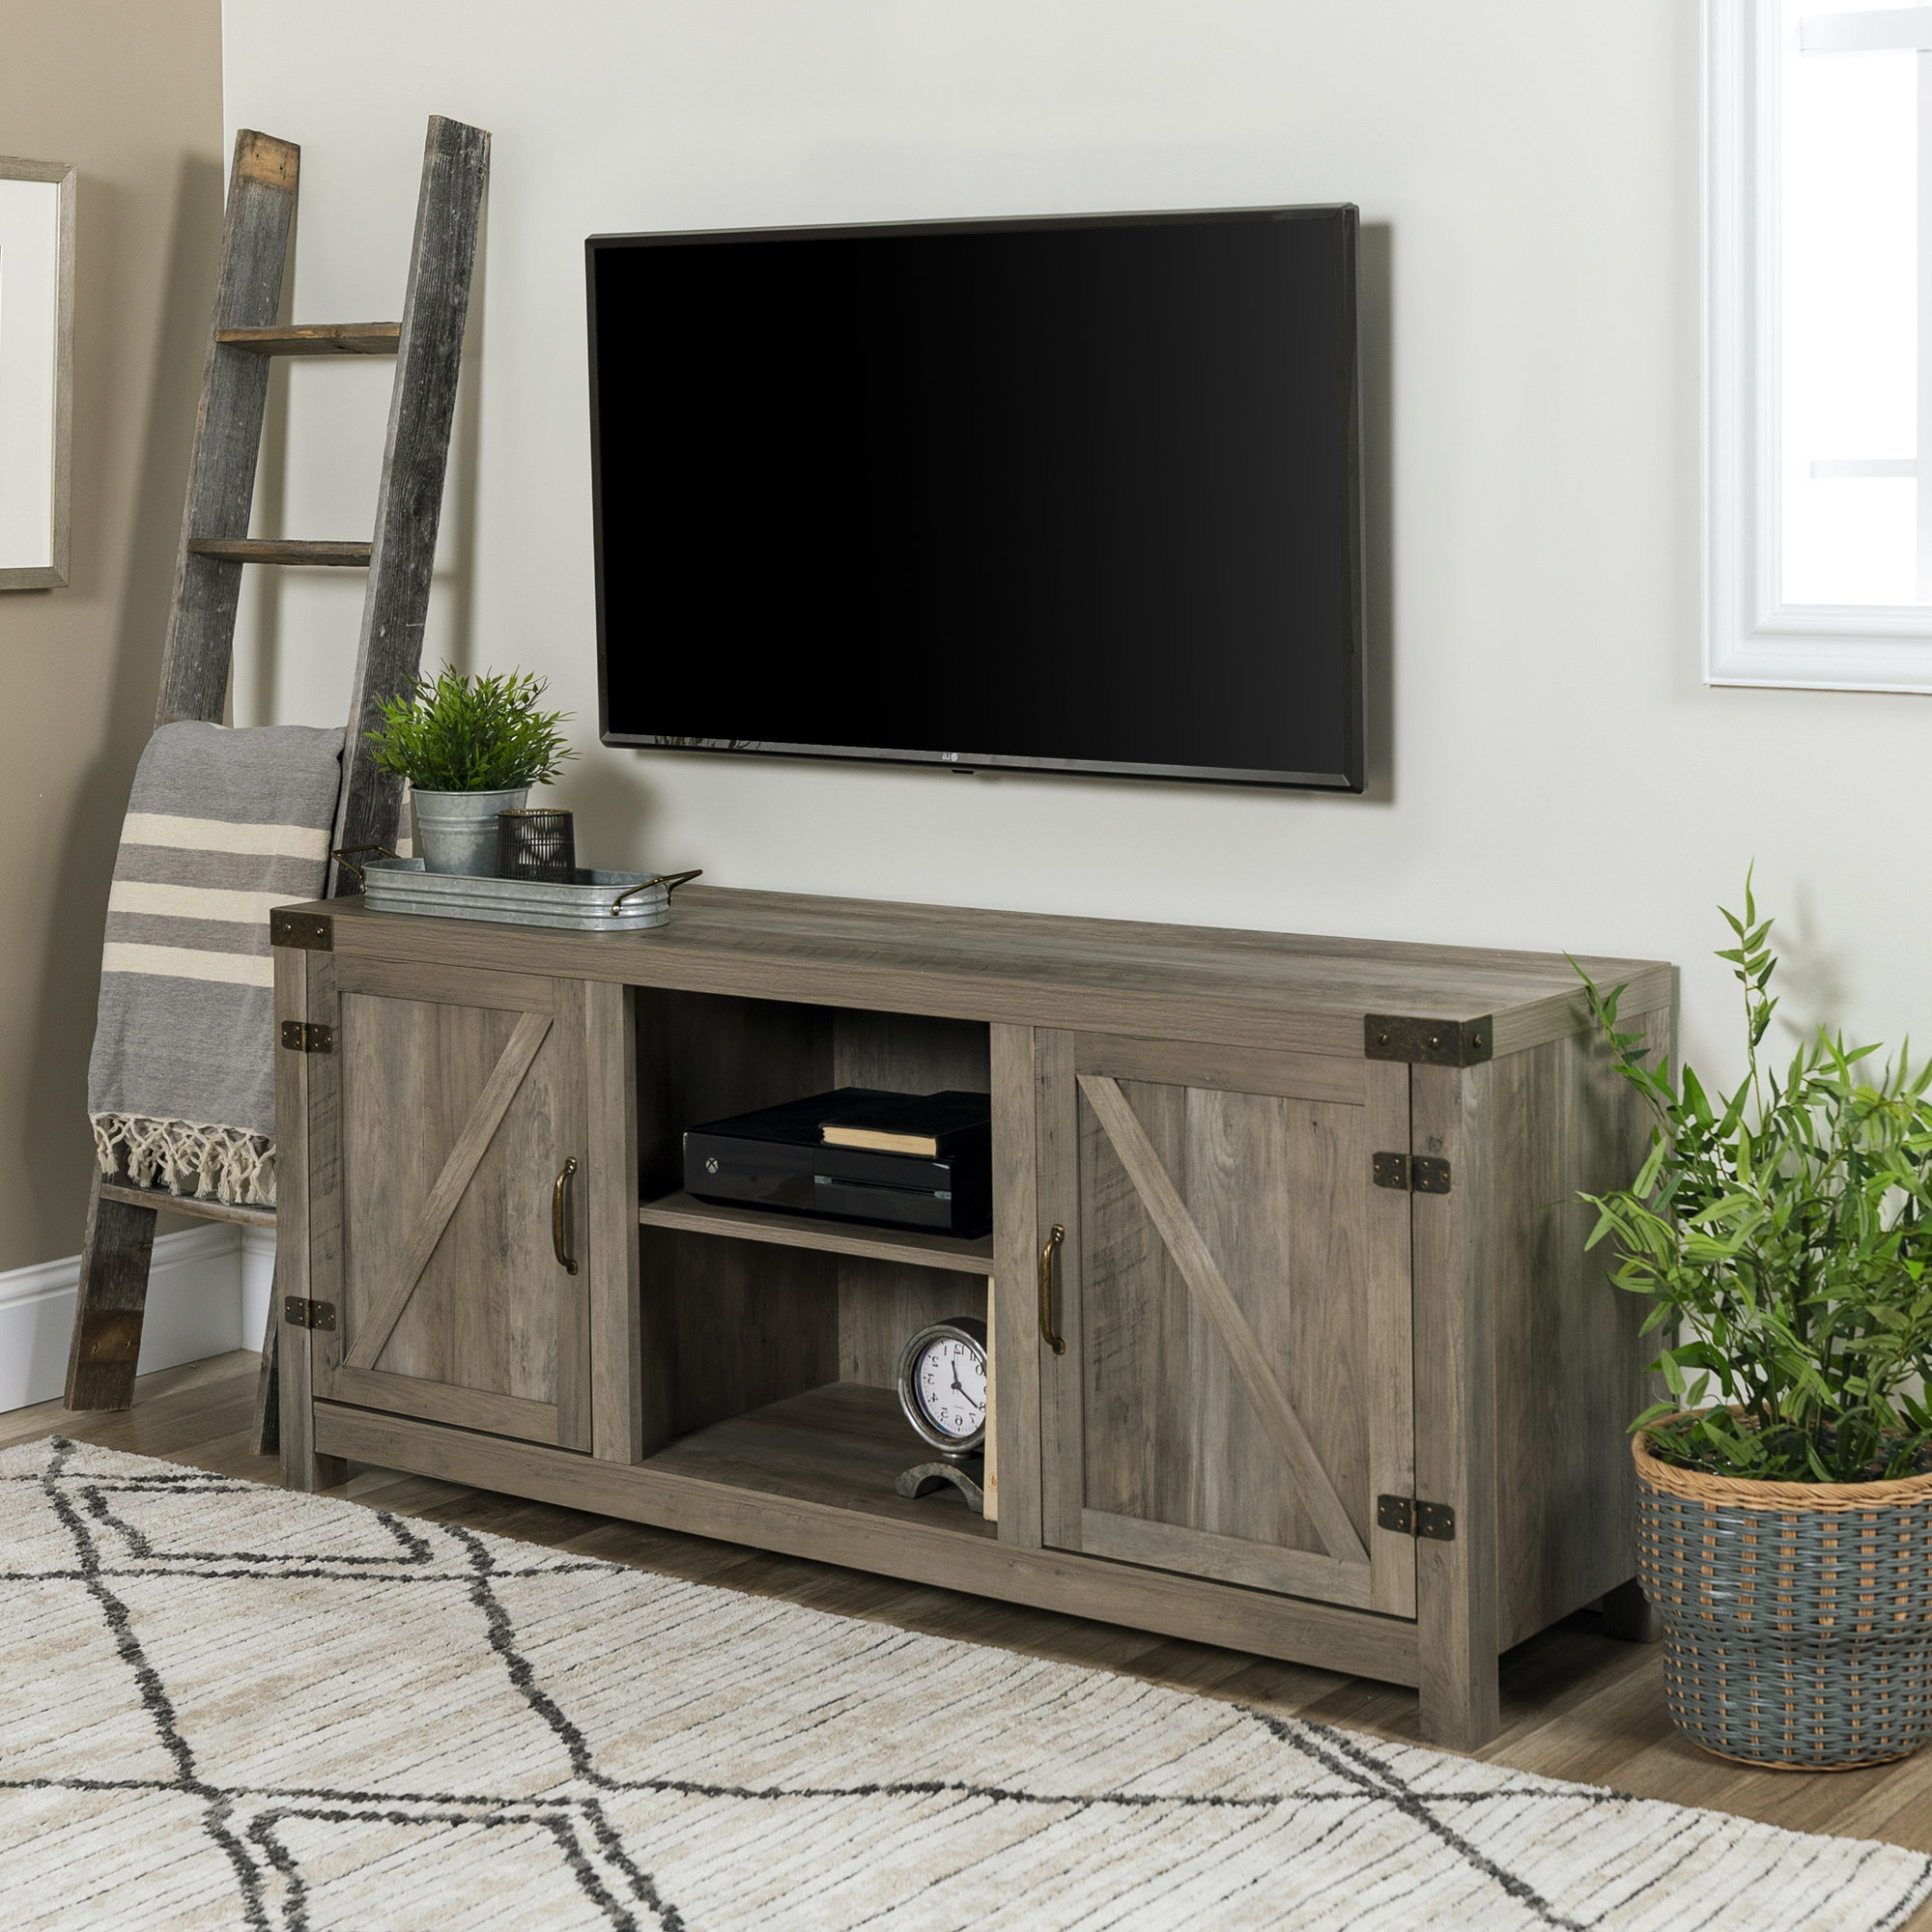 72 Inch Tv Stand | Wayfair Intended For Laurent 70 Inch Tv Stands (View 3 of 20)